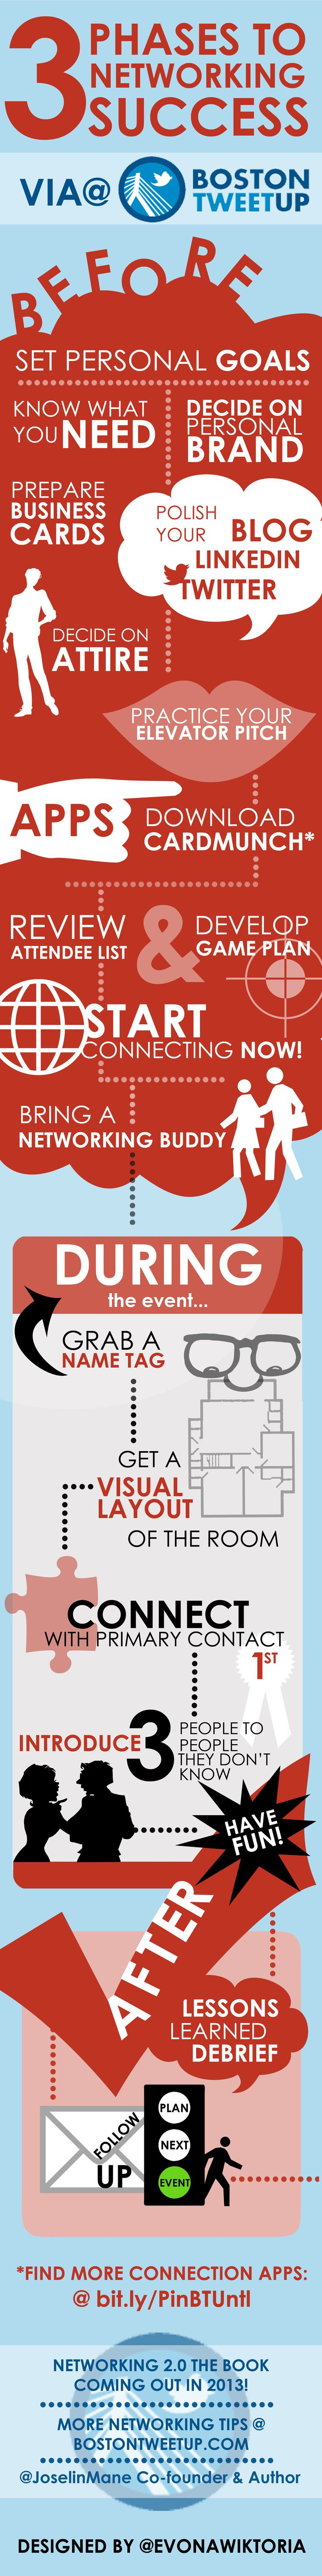 3 Phases To Networking Success